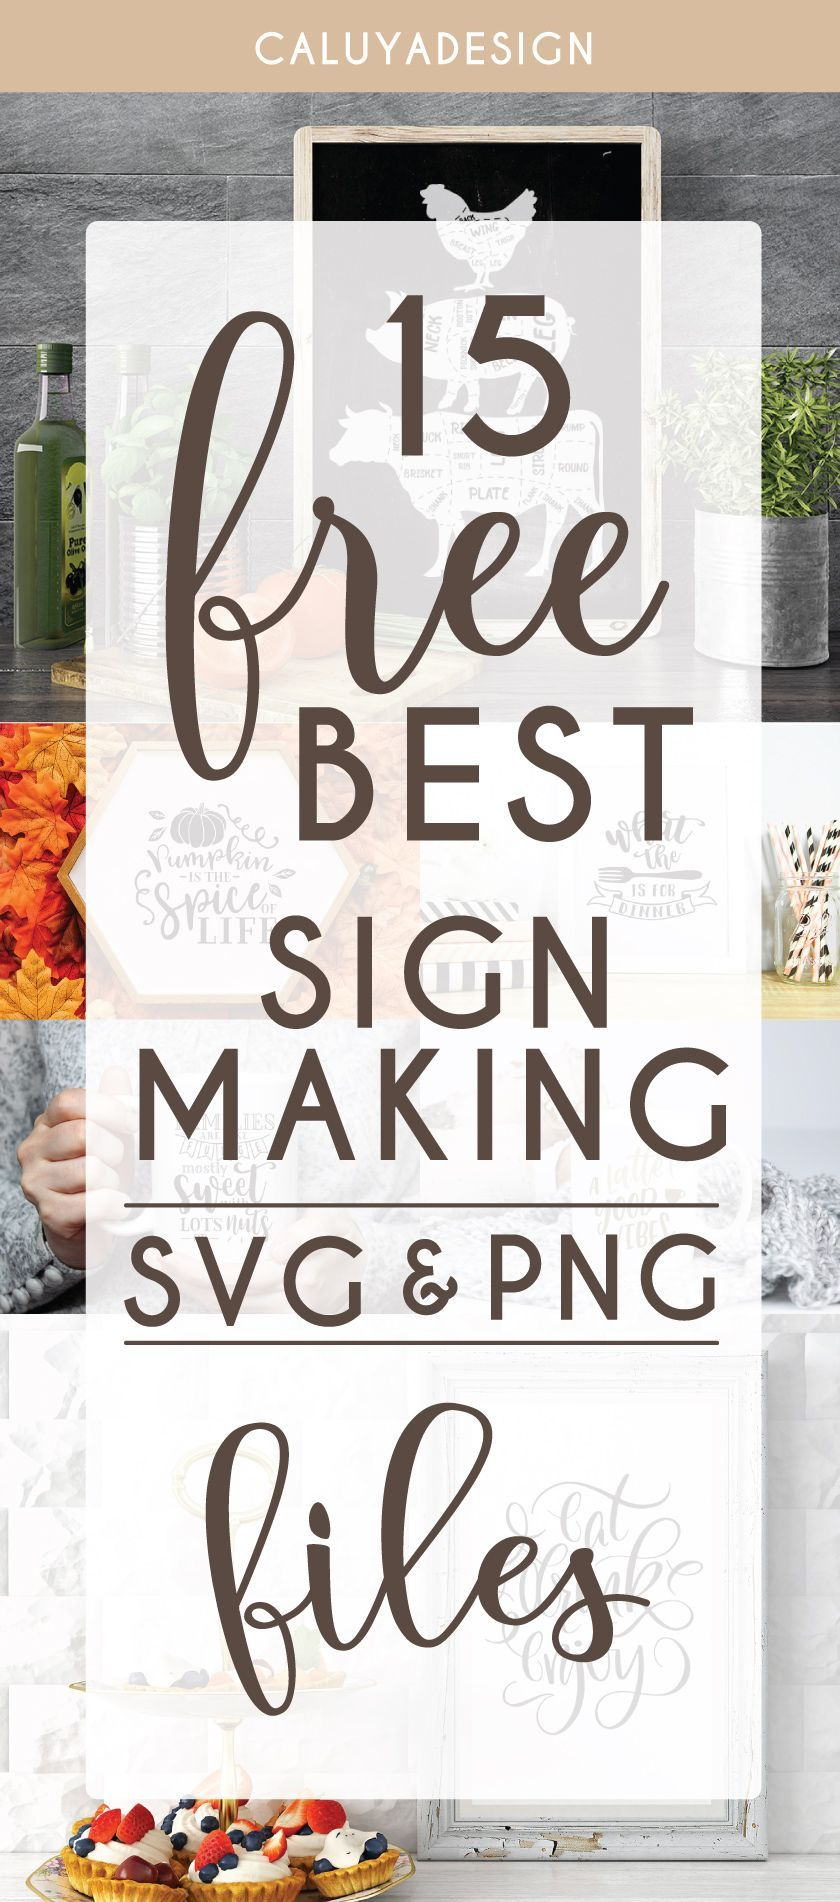 15 FREE Sign Making SVG & PNG Files You Need to Download